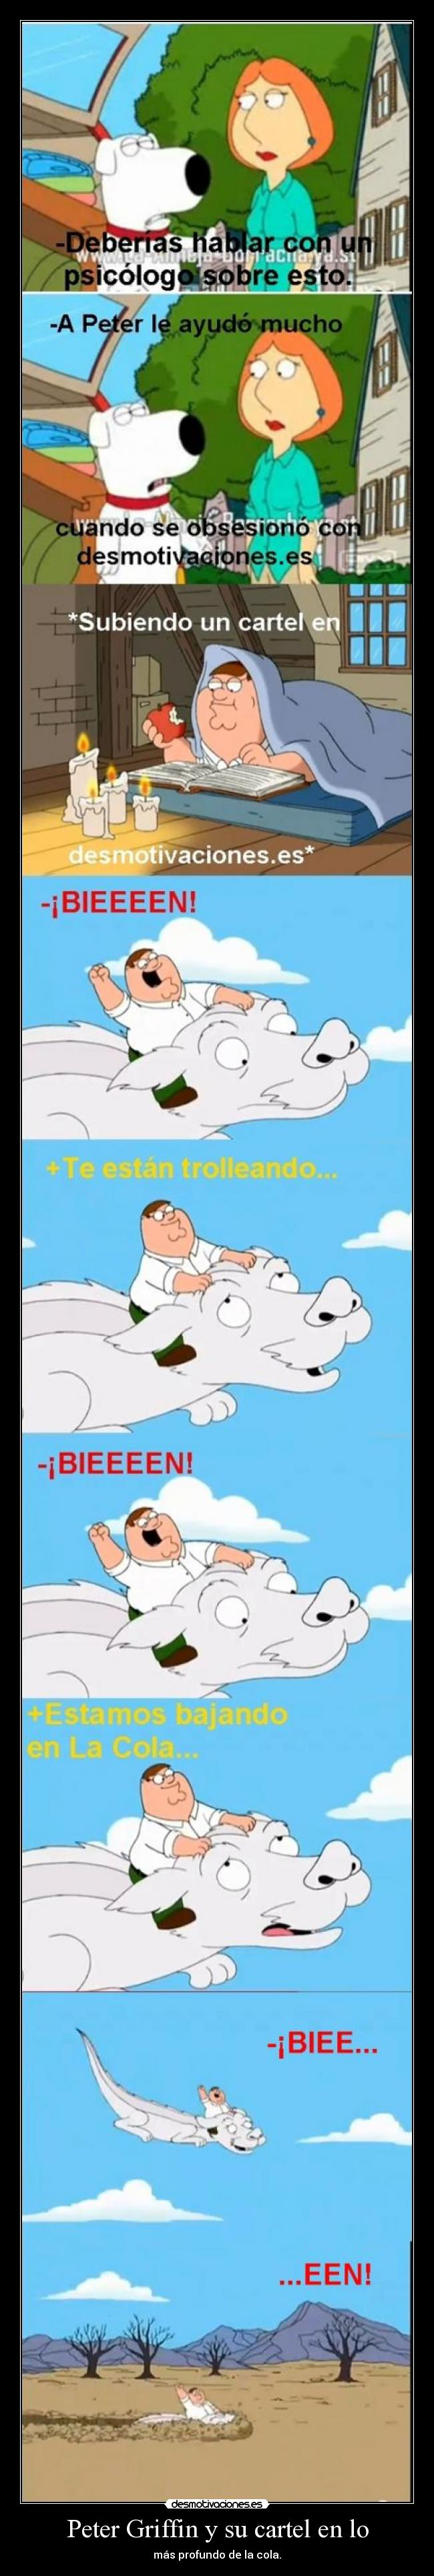 carteles peter griffin cartel cola padre familia historia interminable parodia version desmotivaciones